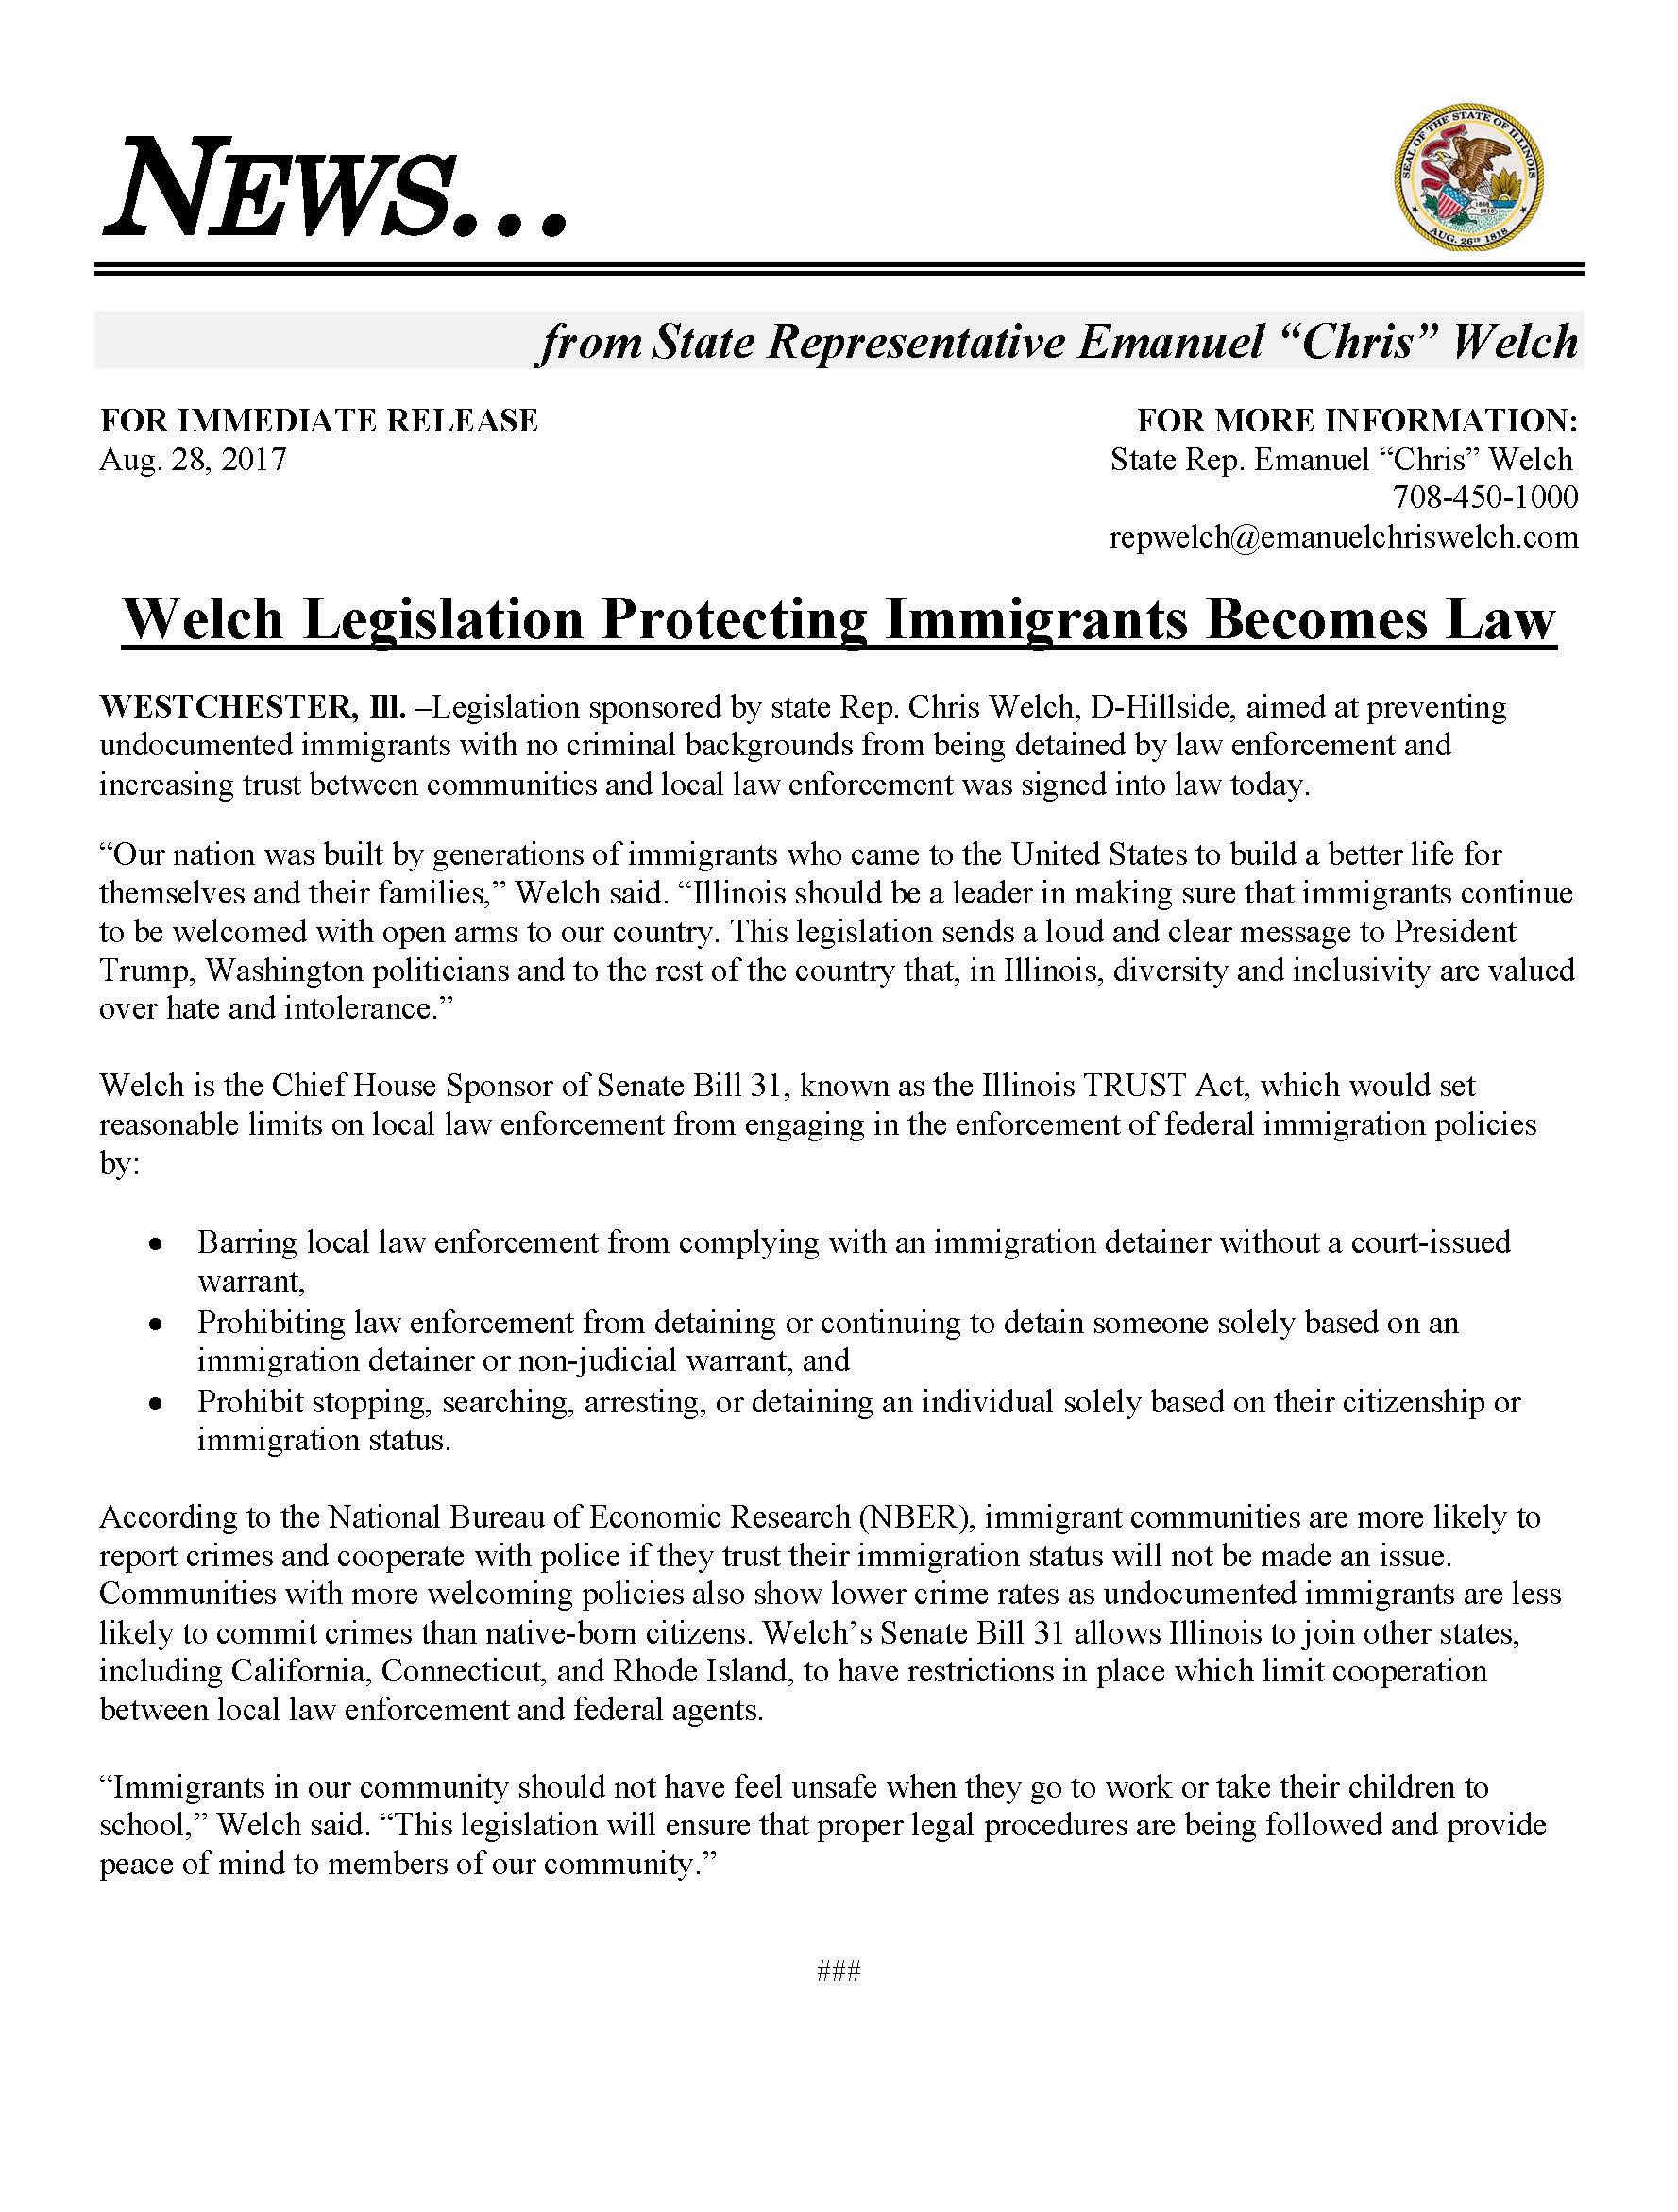 Welch Legislation Protecting Immigrants Becomes Law  (August 28, 2017)